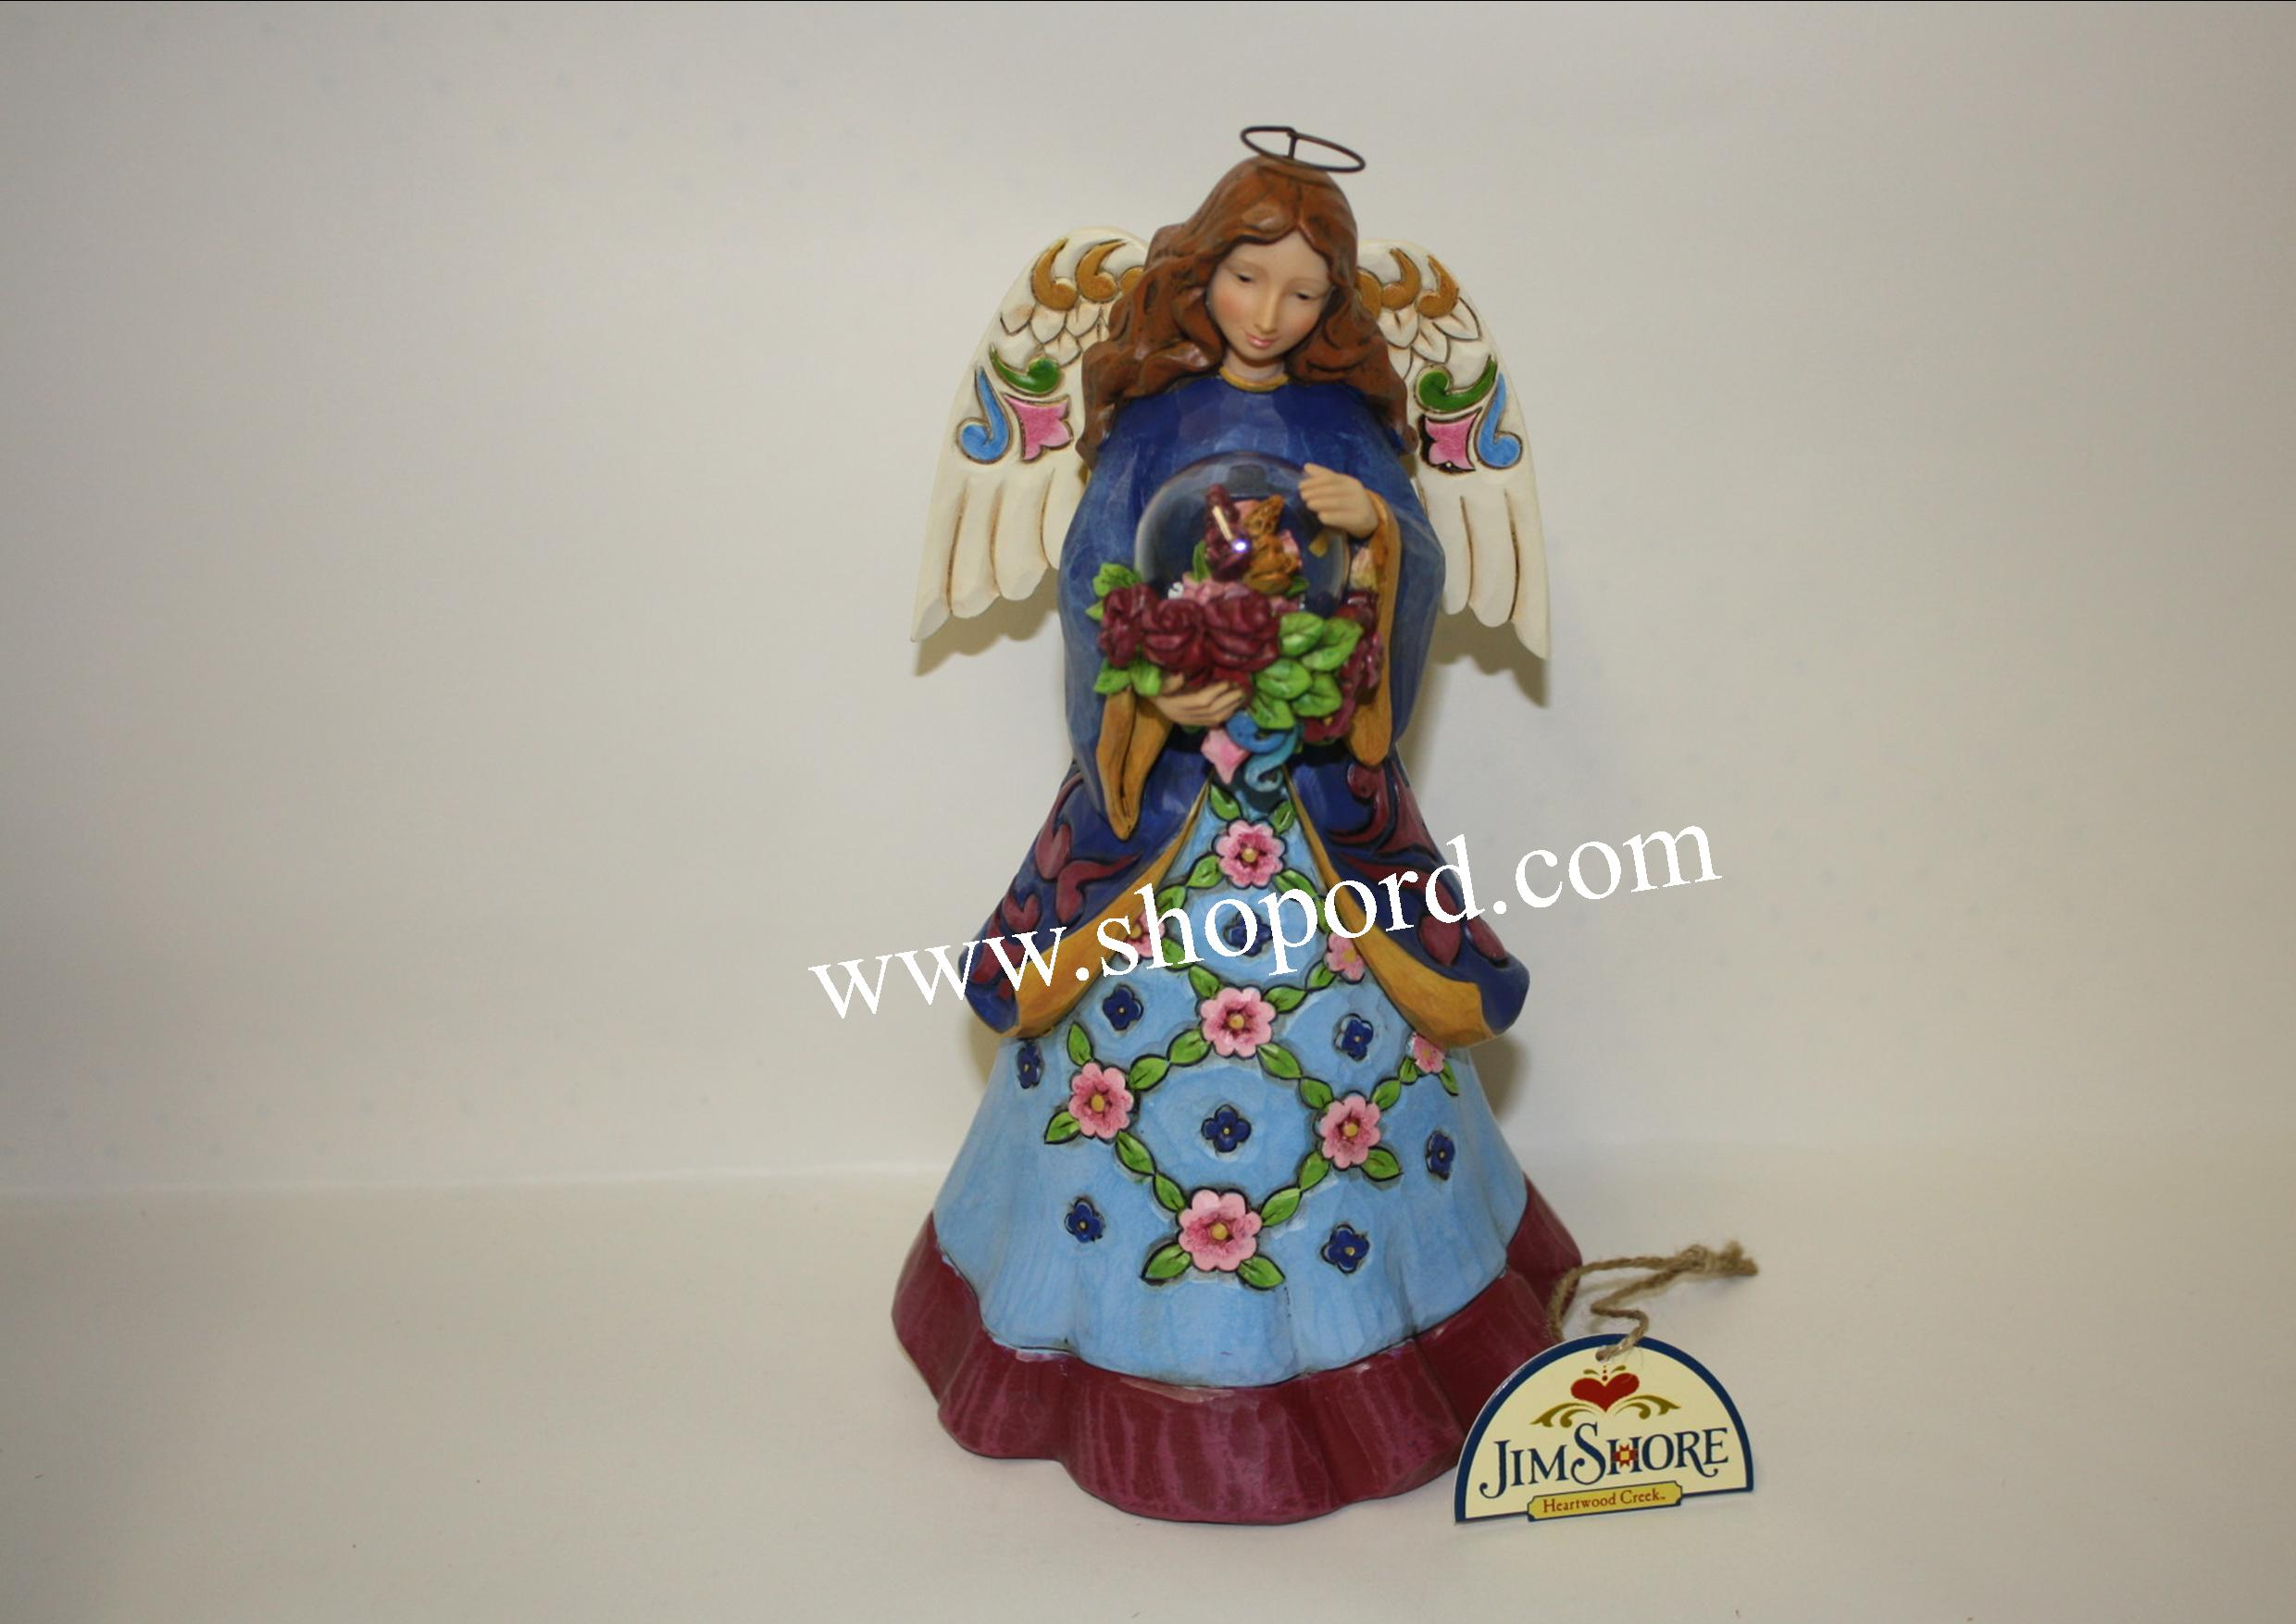 Jim Shore Enesco Angel Figurine With Flowers In Glass Dome Beauty Blooms From Within 4047070